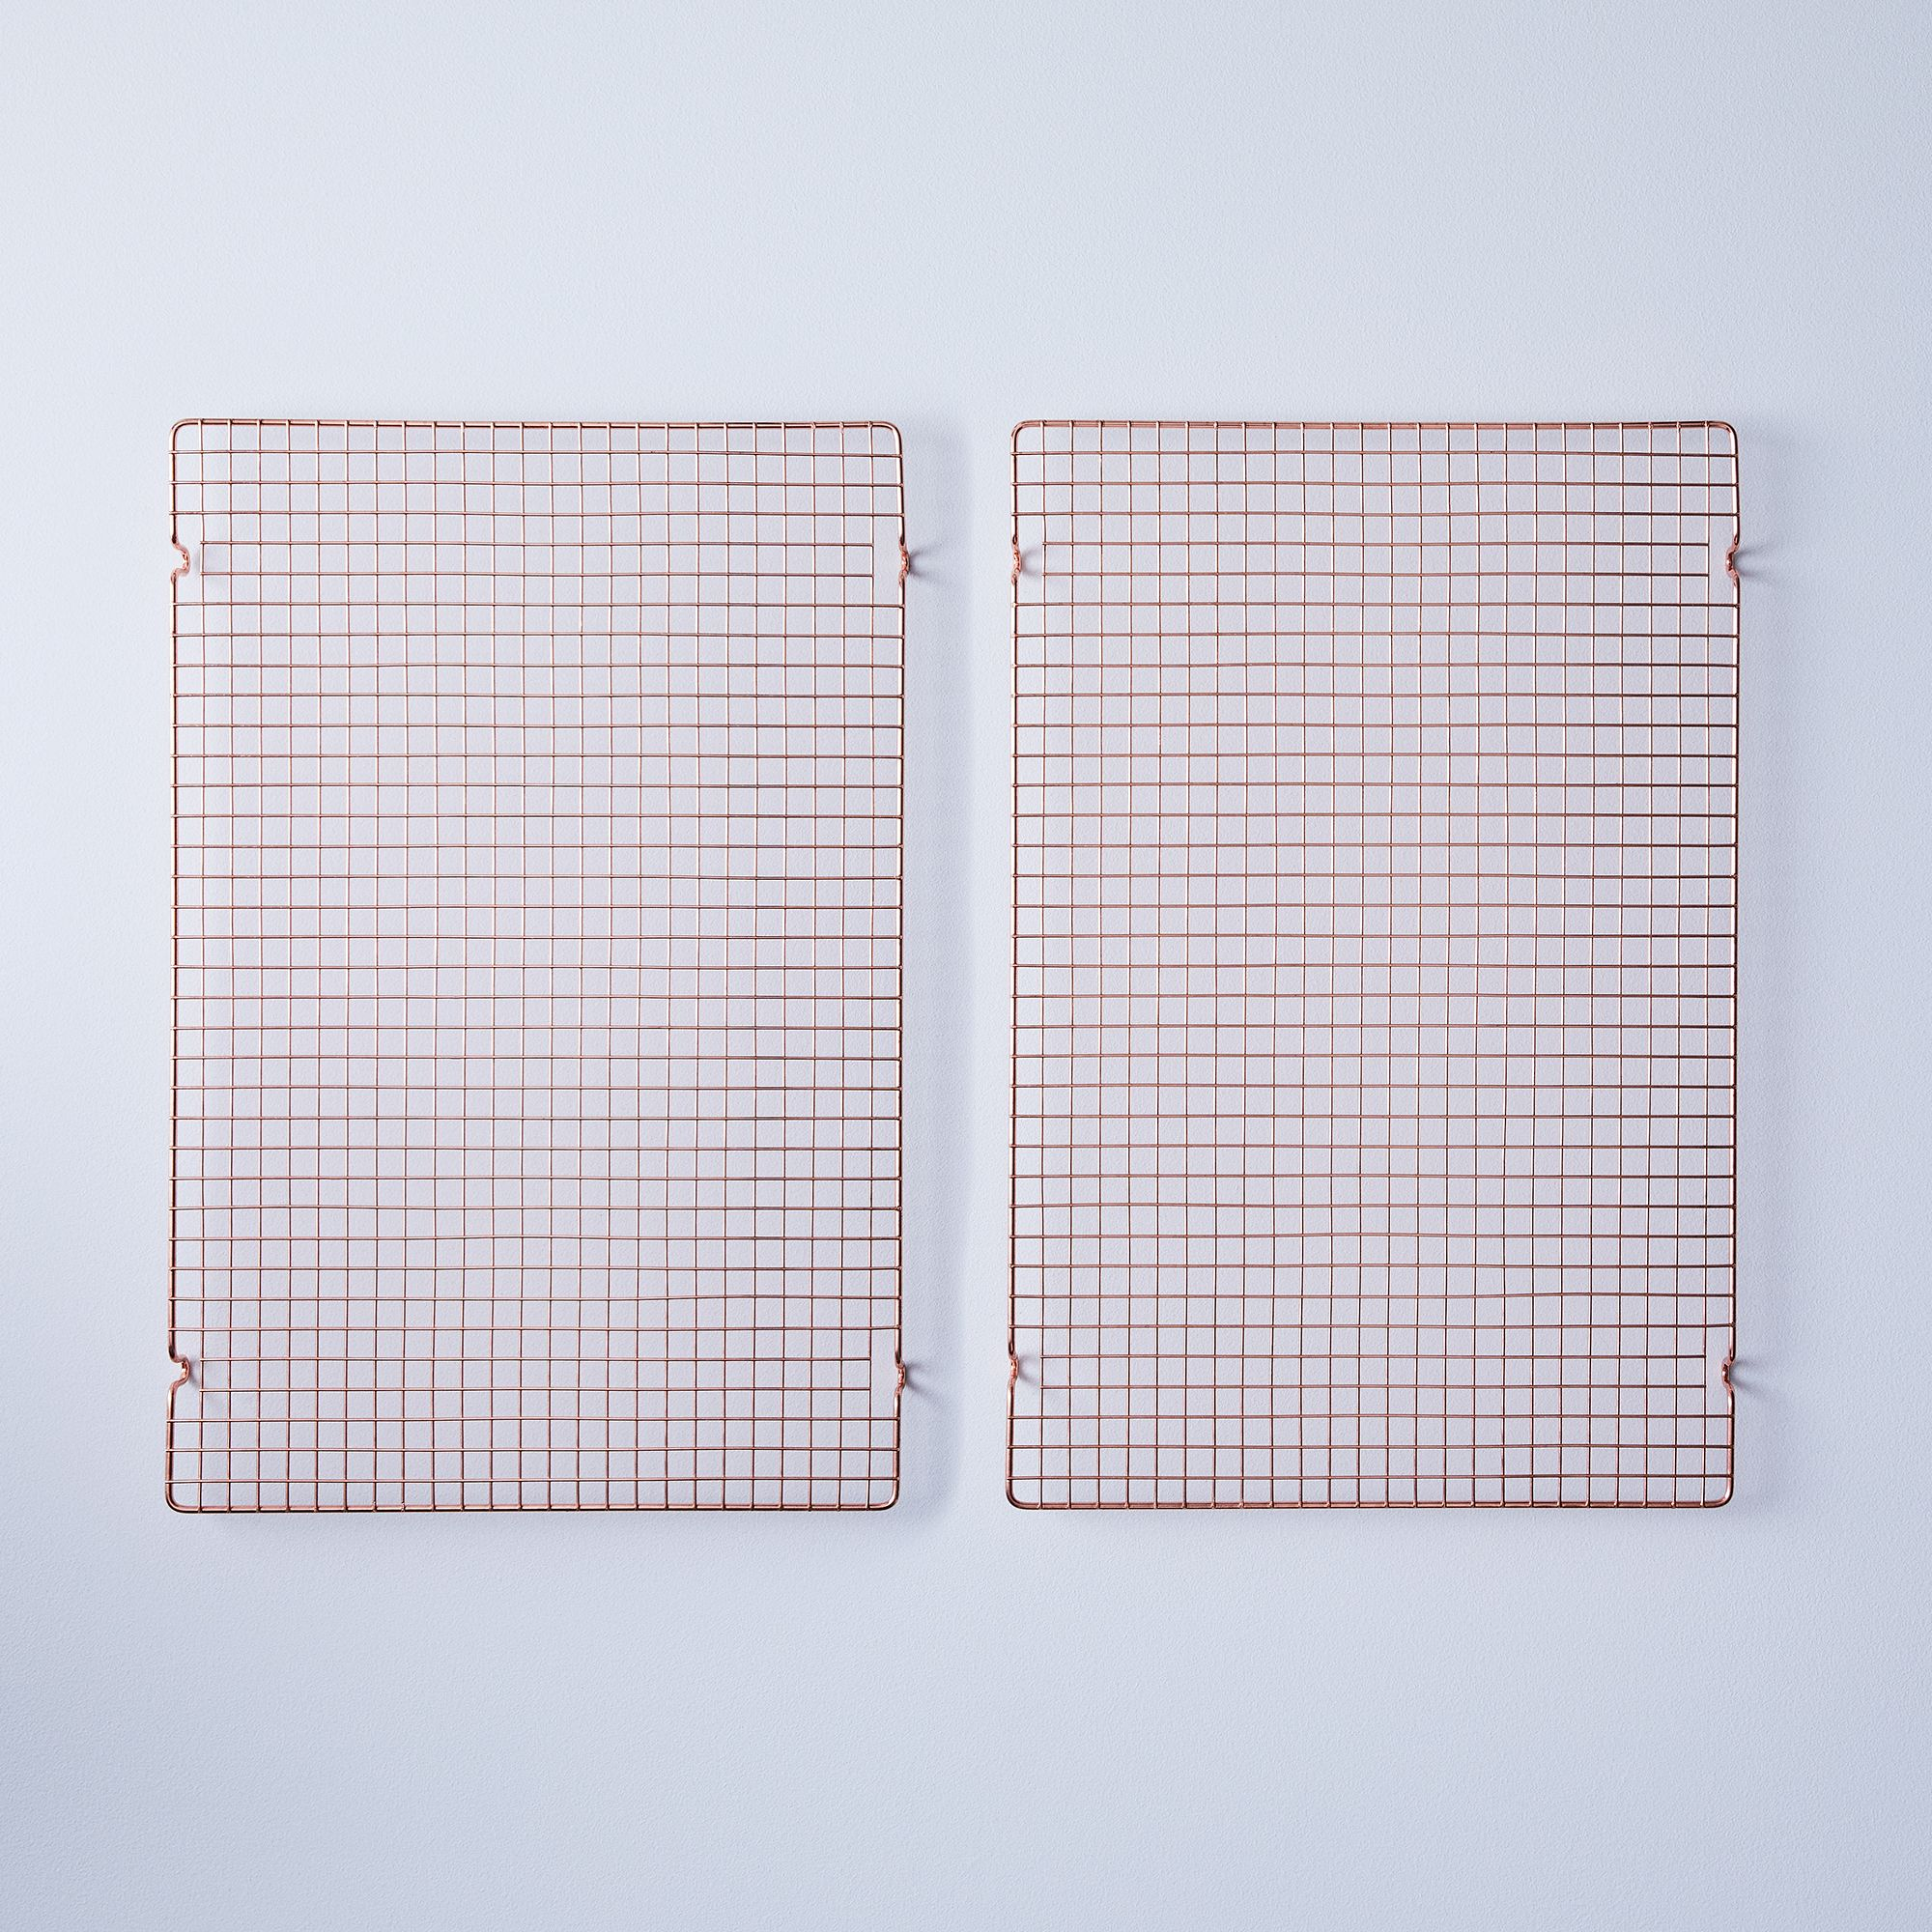 9915323f 7981 49cf 966b 049f6095c4a7  2017 1218 nordic ware copper plate cooling grid set of 2 extra large silo ty mecham 002